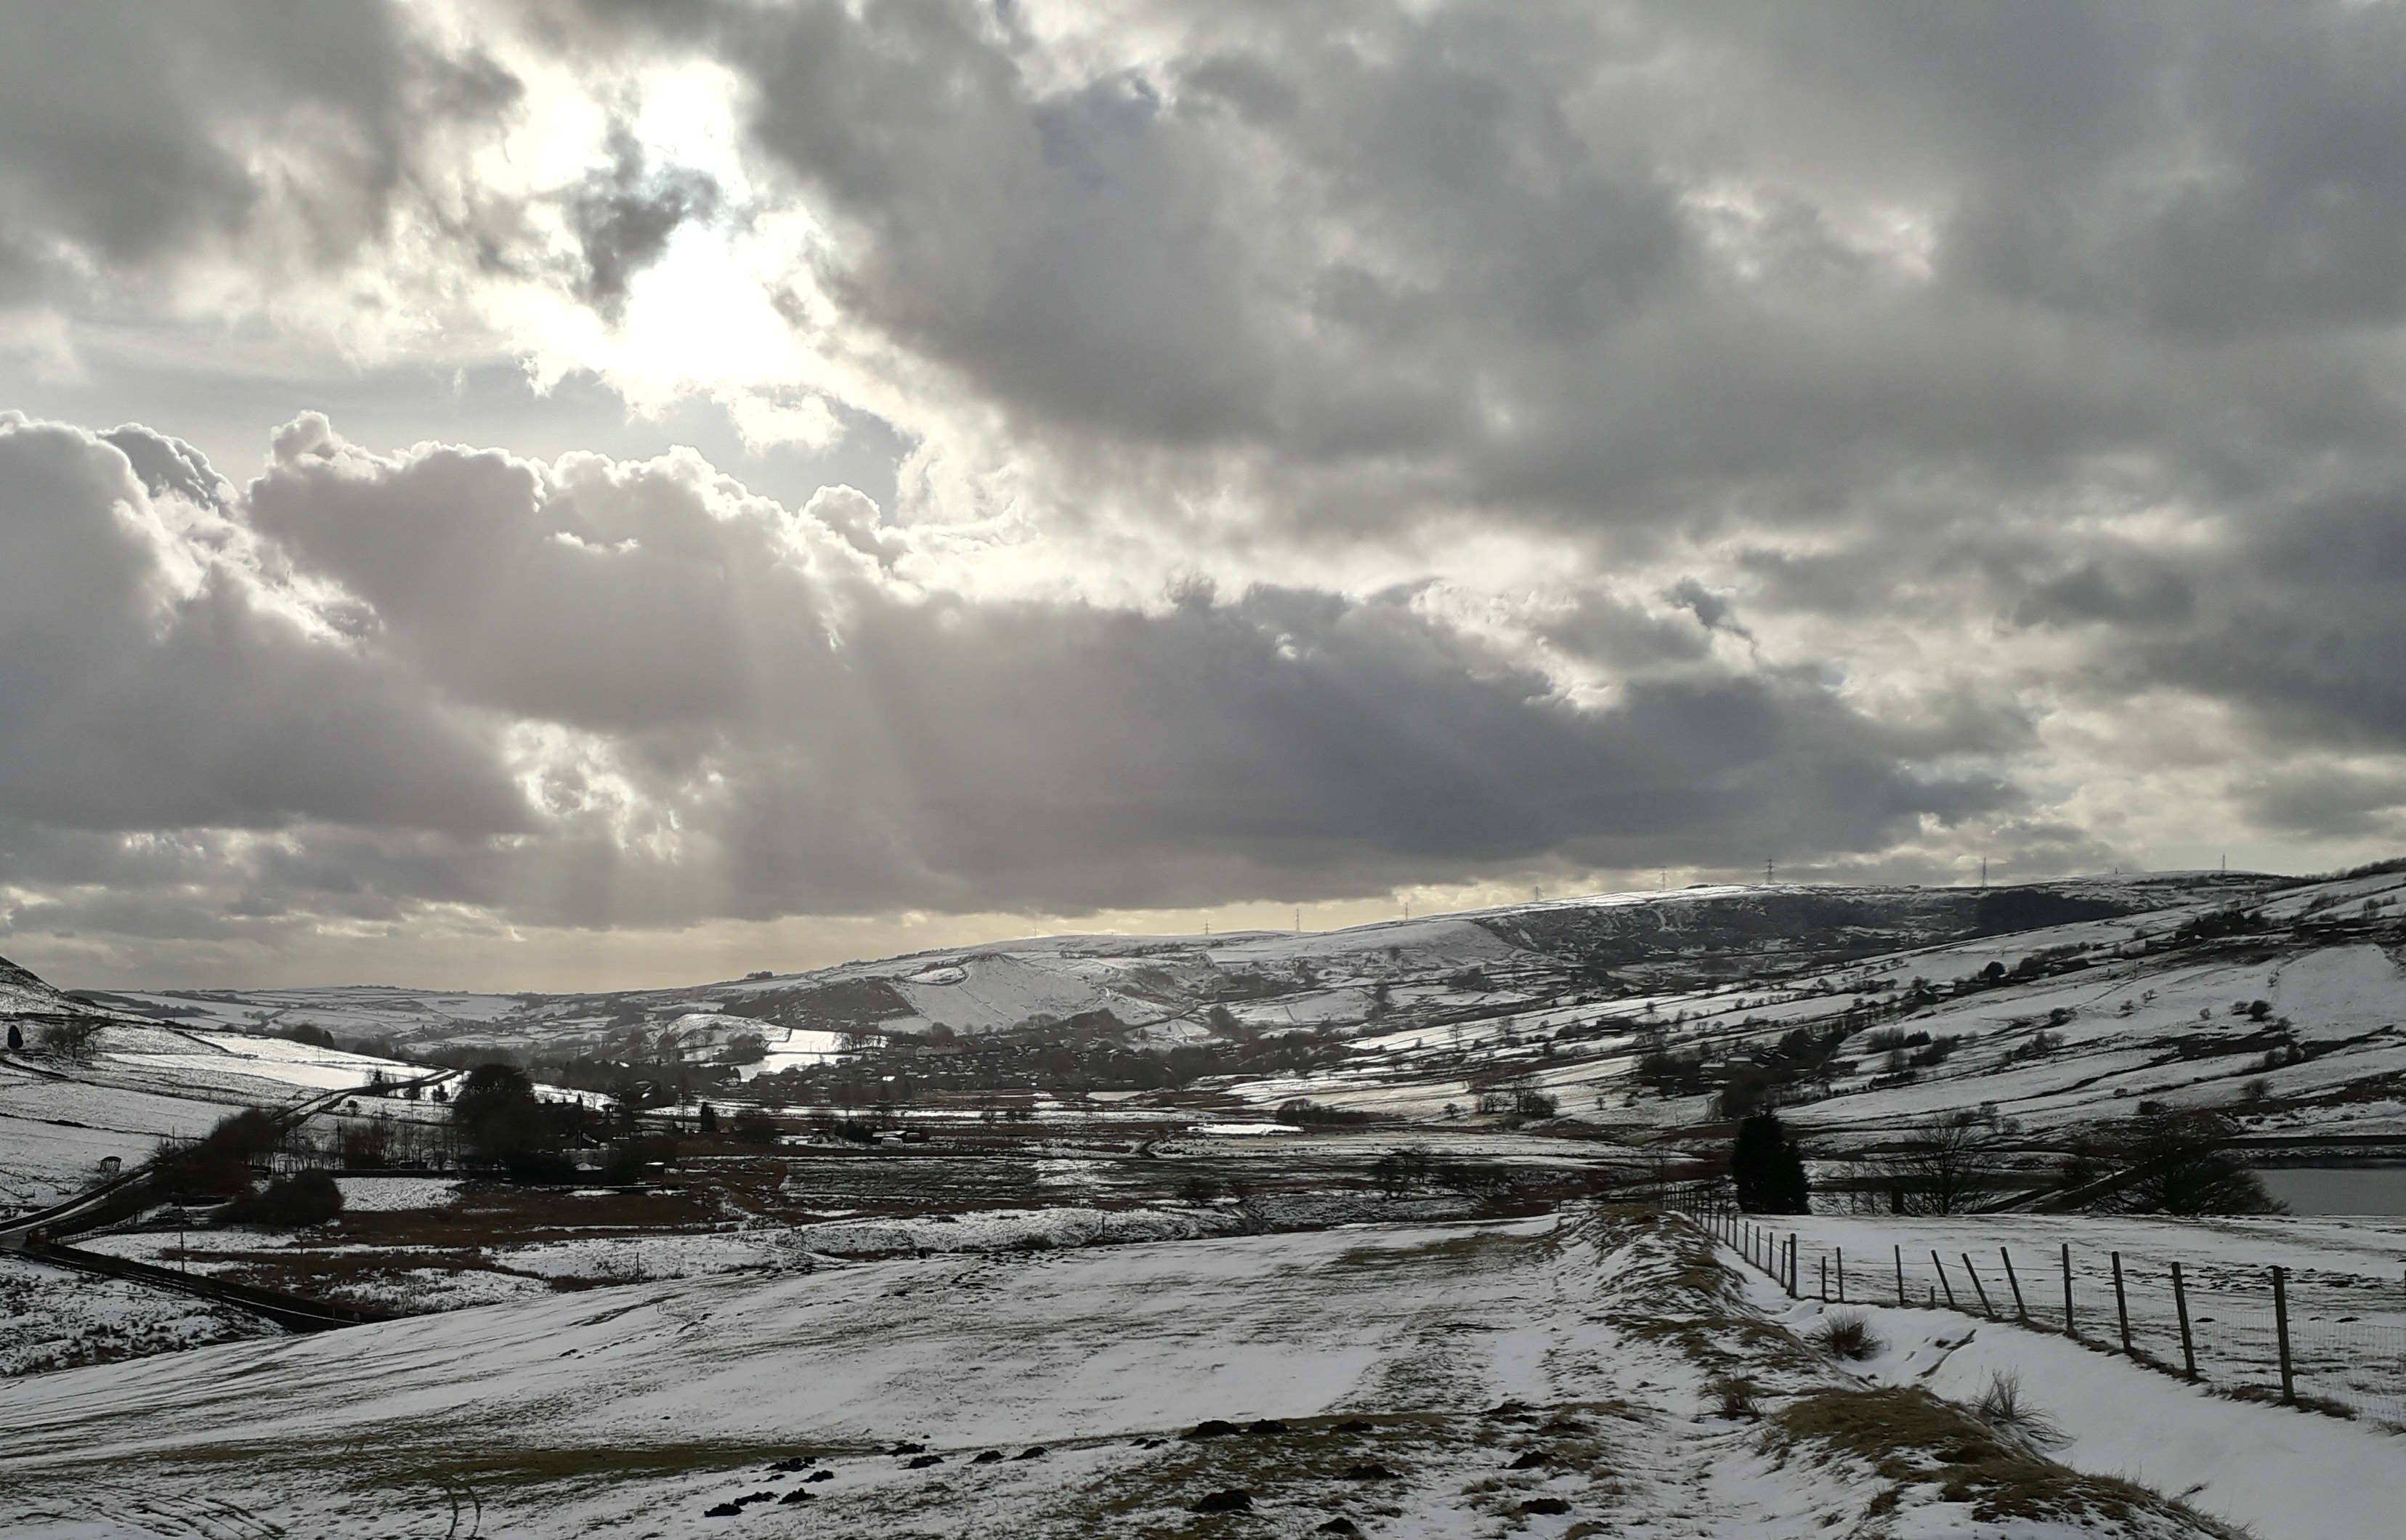 12/02/18, Snowy view along the valley towards Delph